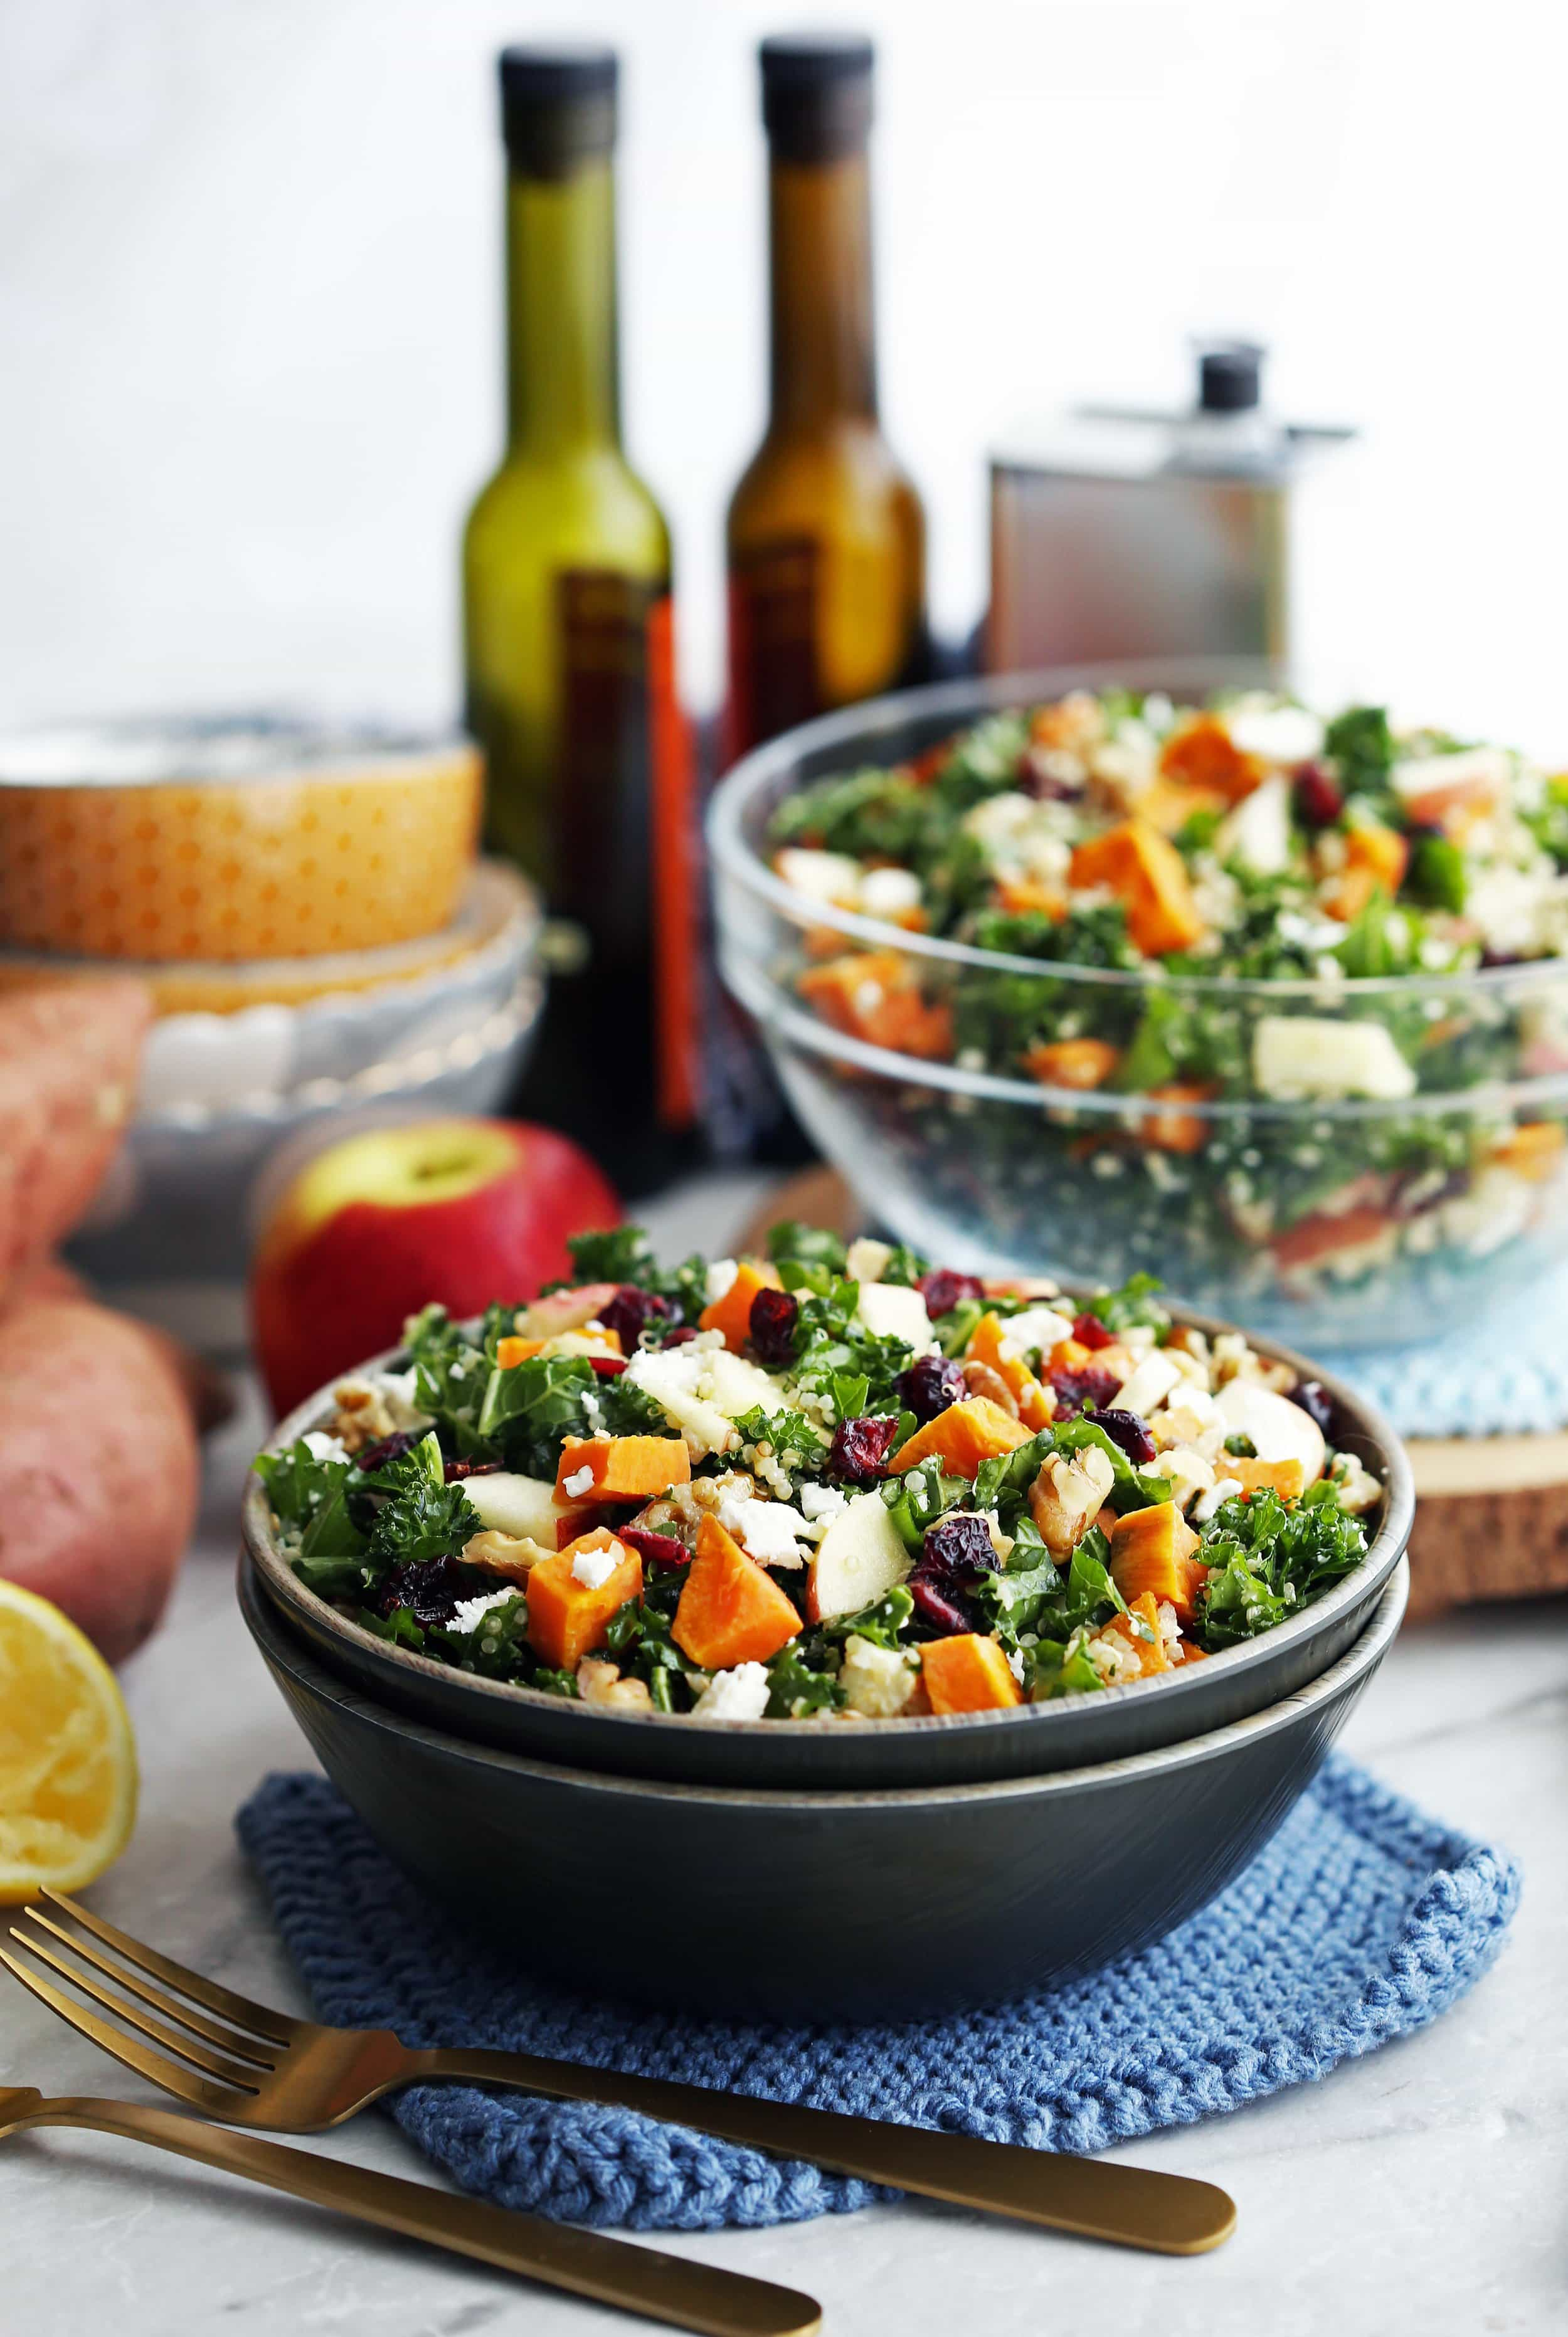 Roasted sweet potato quinoa kale salad in a wooden bowl and a glass bowl.